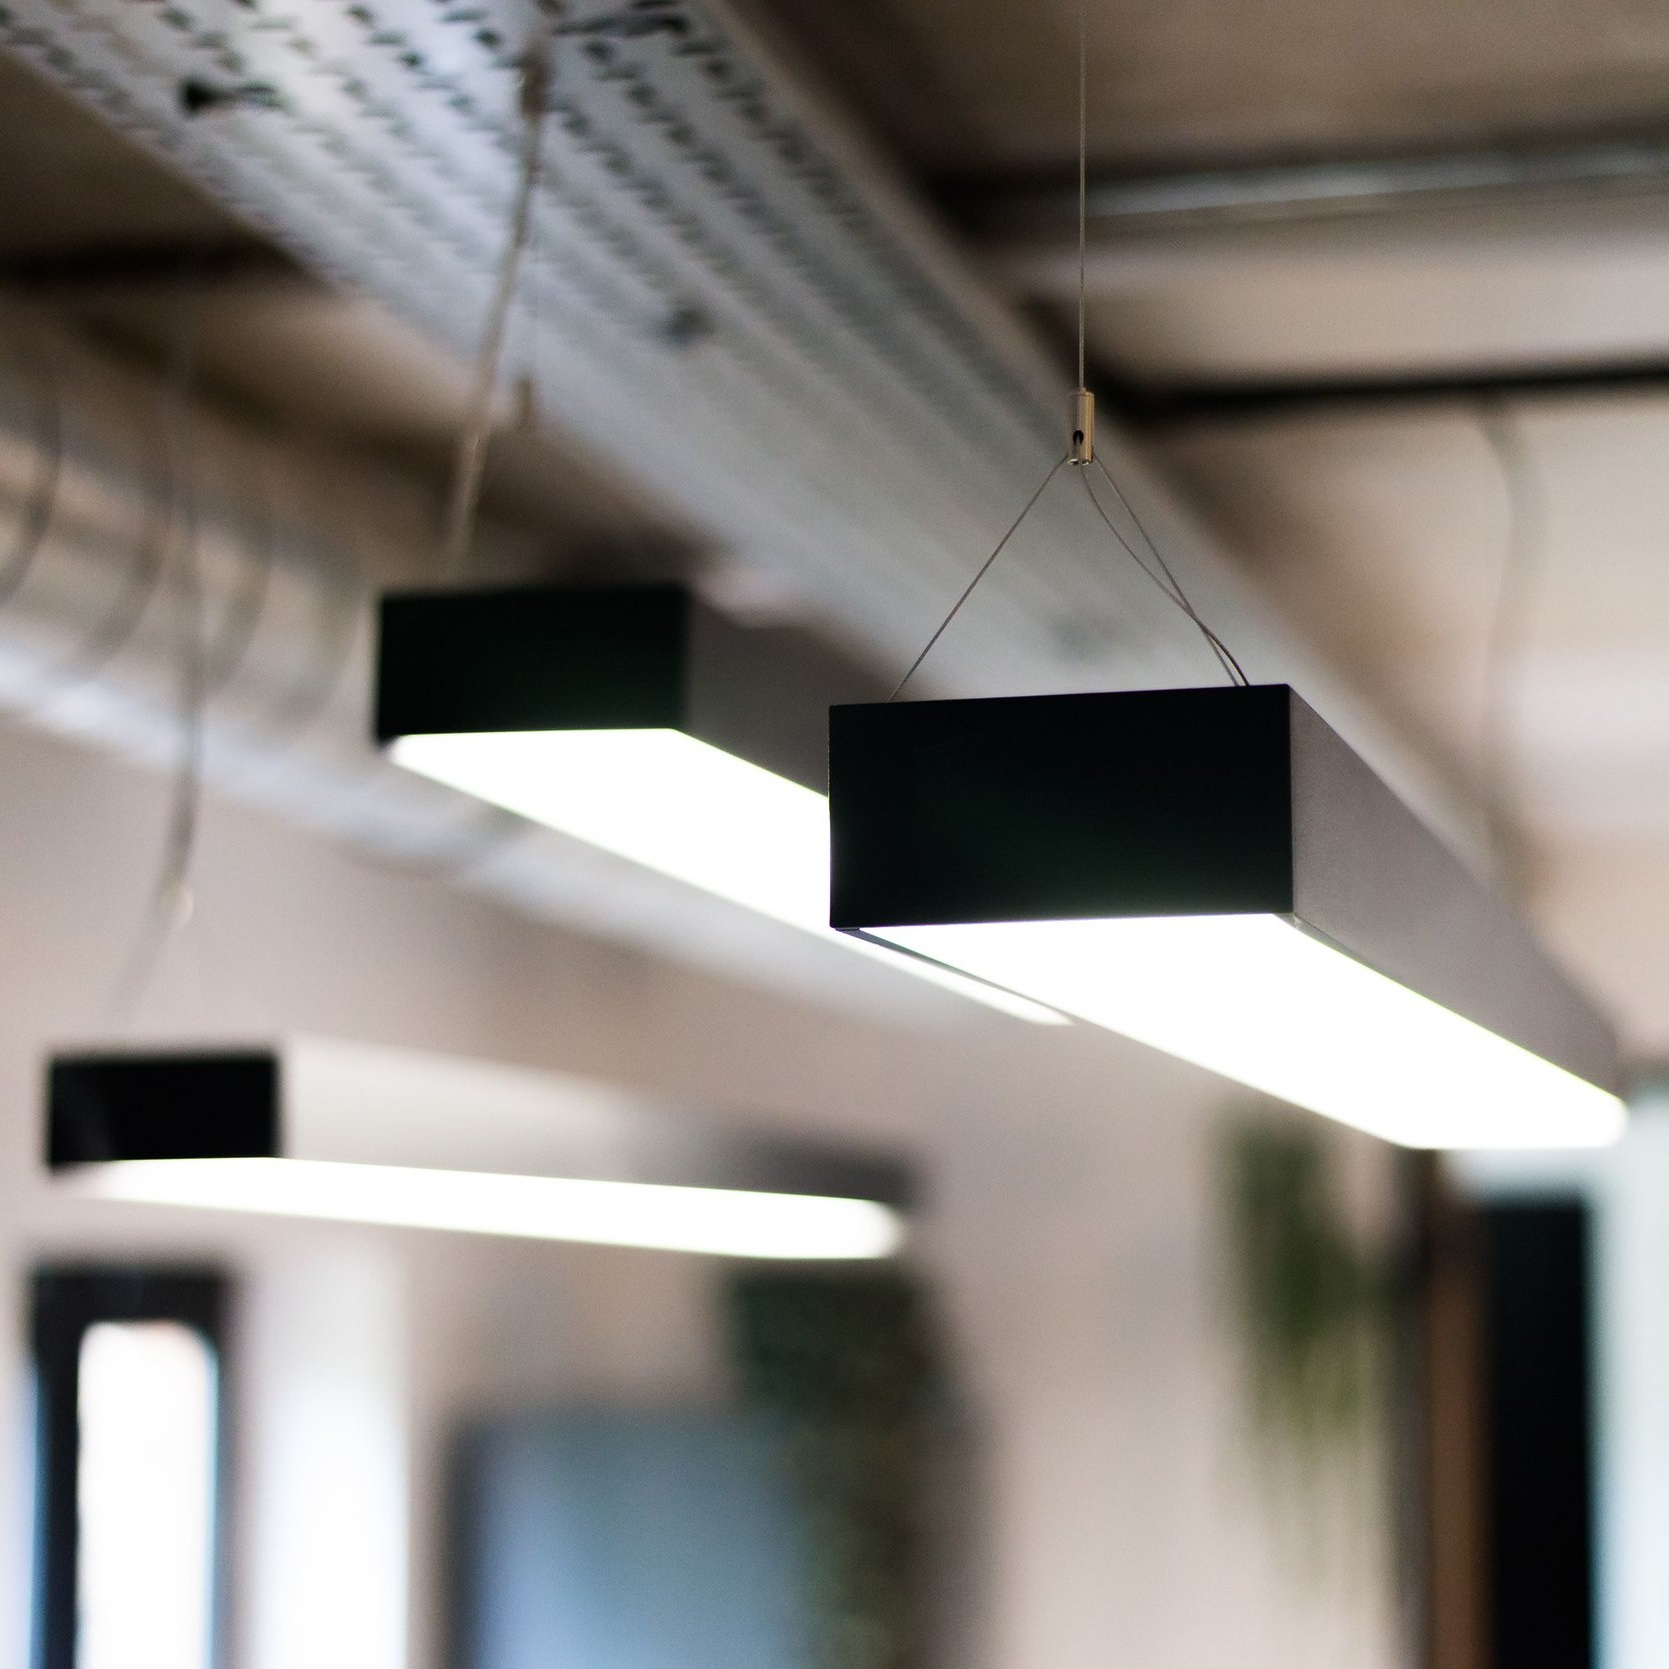 UGR <16 - The diamond prismatic lens distributes glare-free lighting with UGR<16 for a healthy working environment.